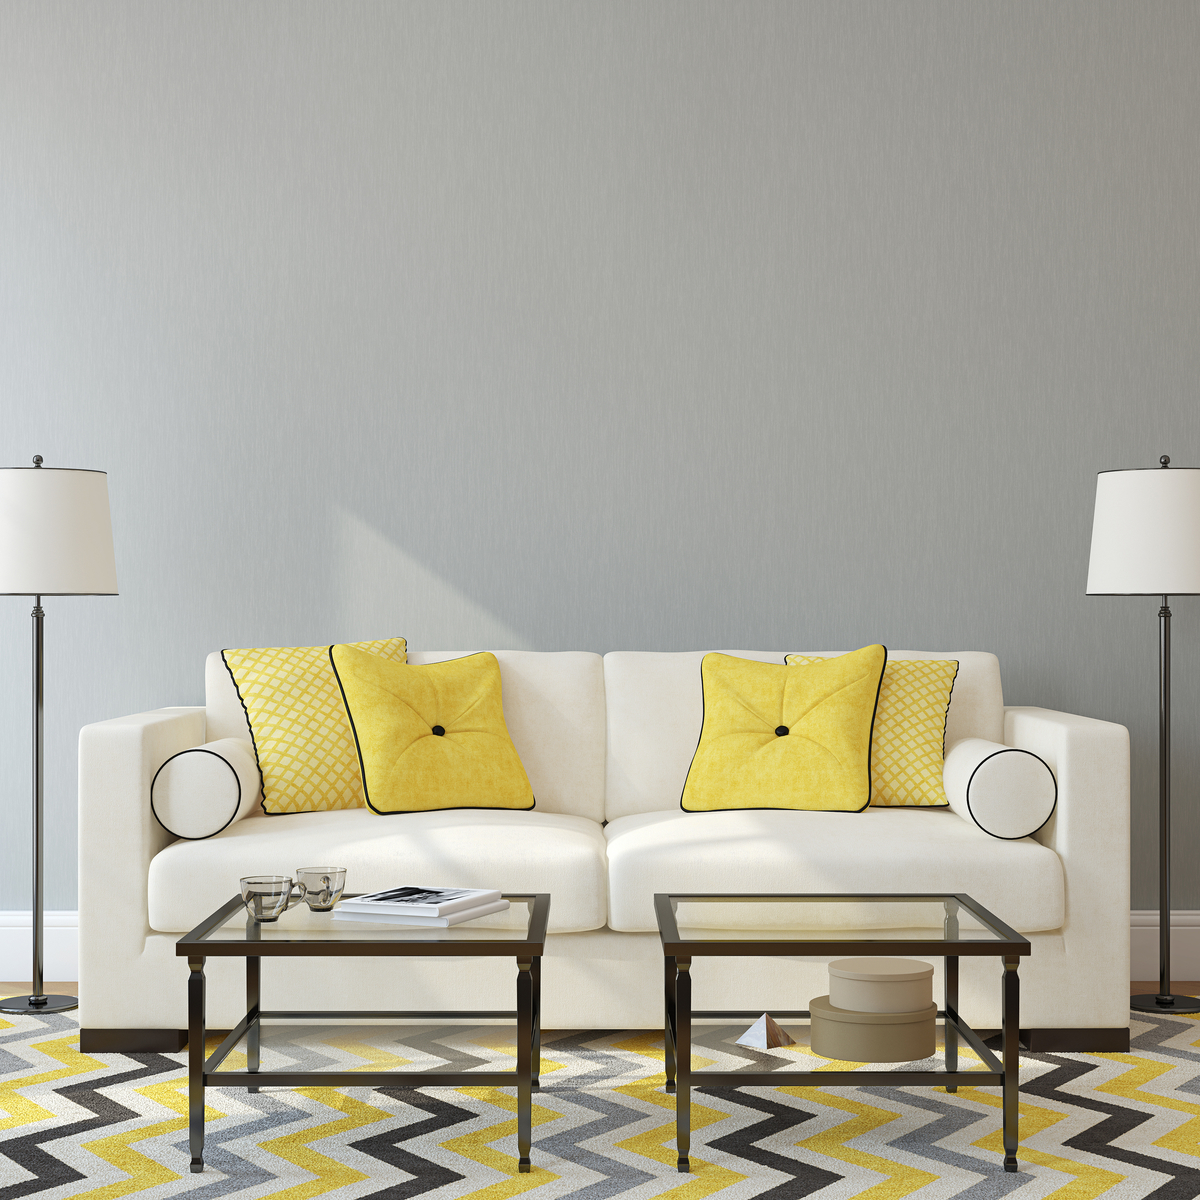 luxurious white couch with yellow cushions